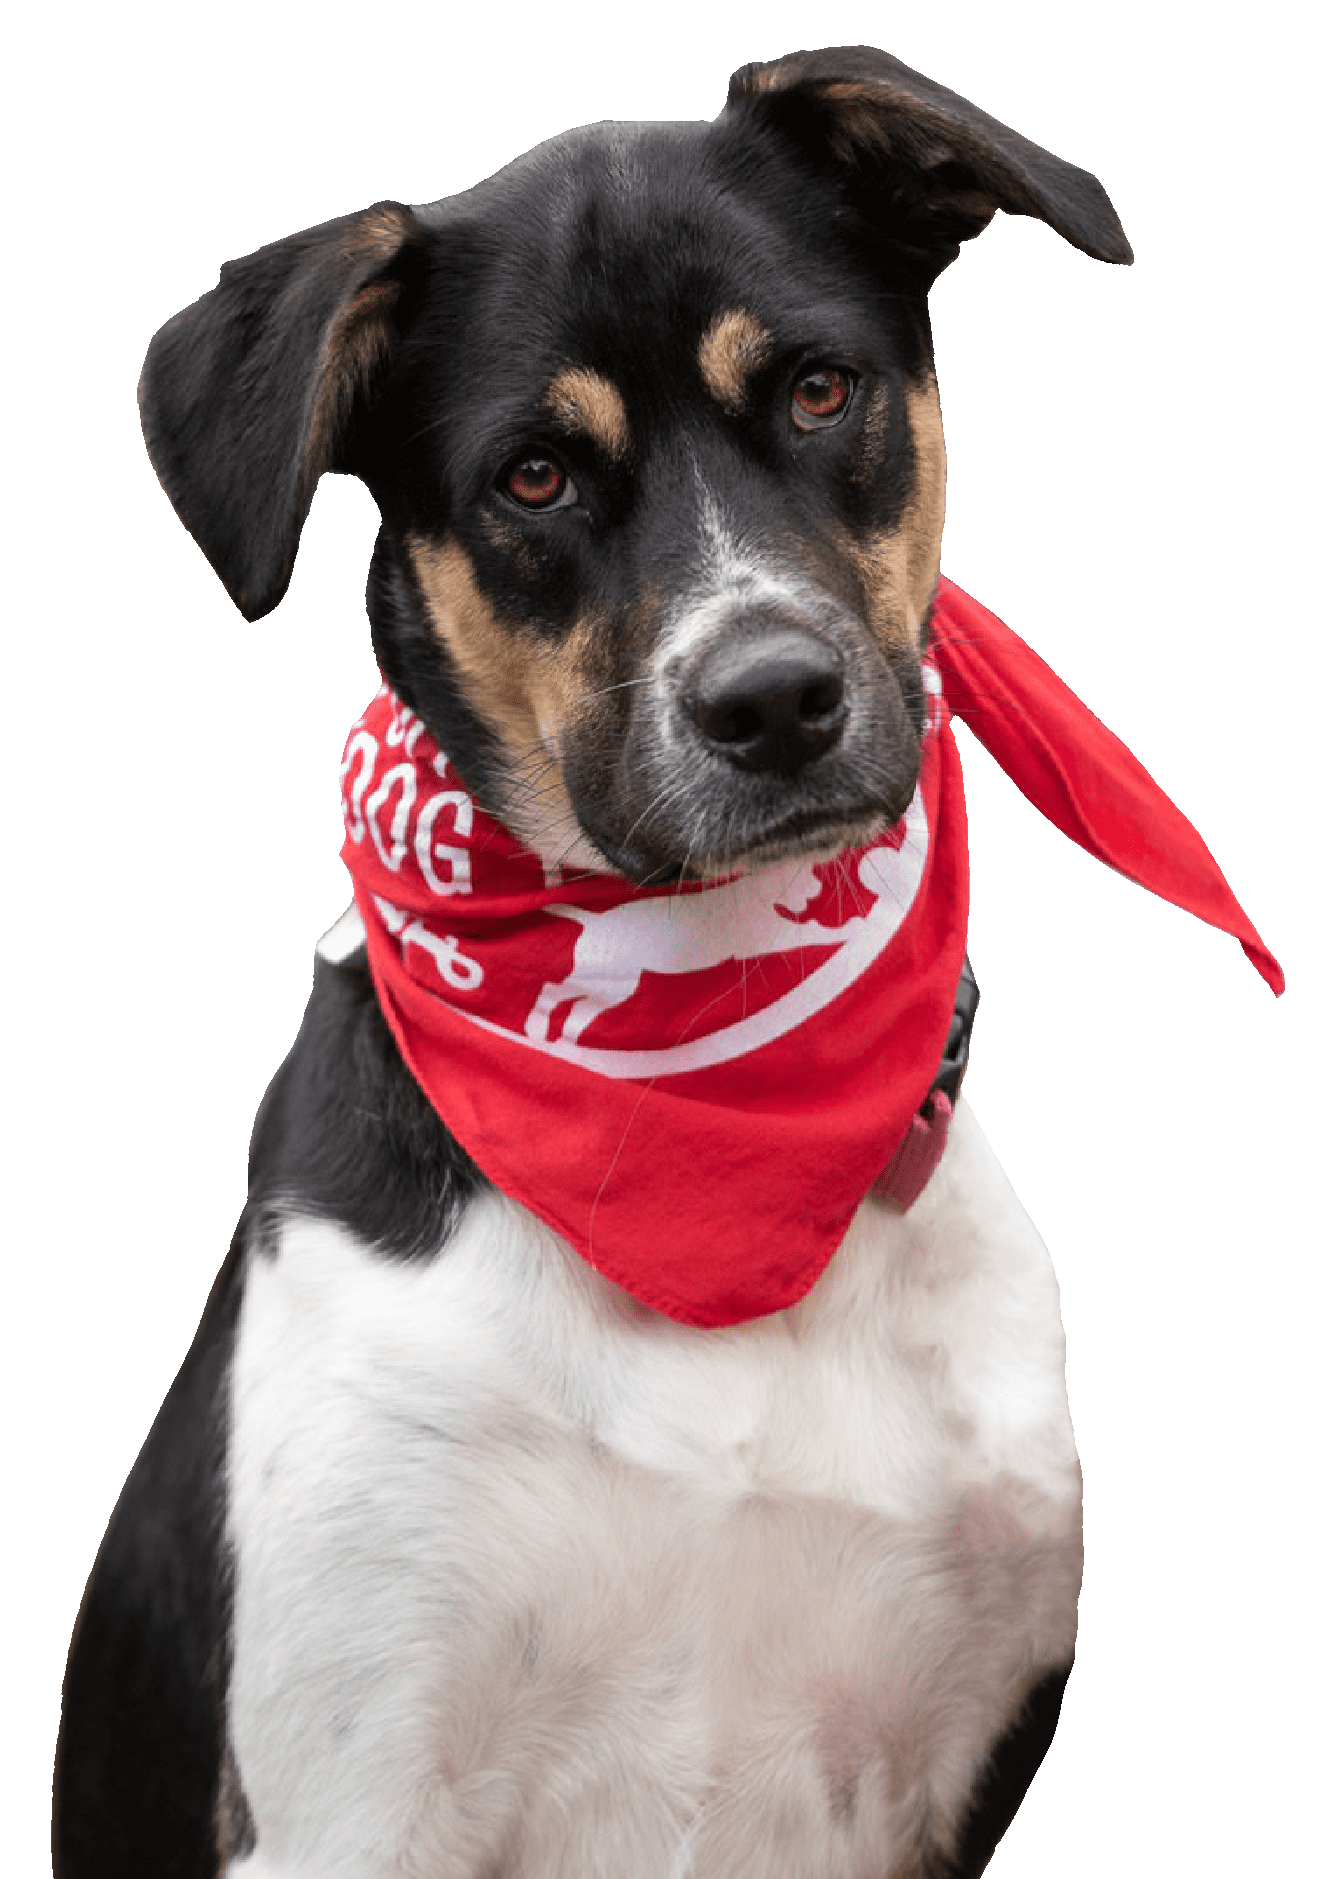 Black, Brown & White puppy wearing Red Off Leash Dog training bandana.